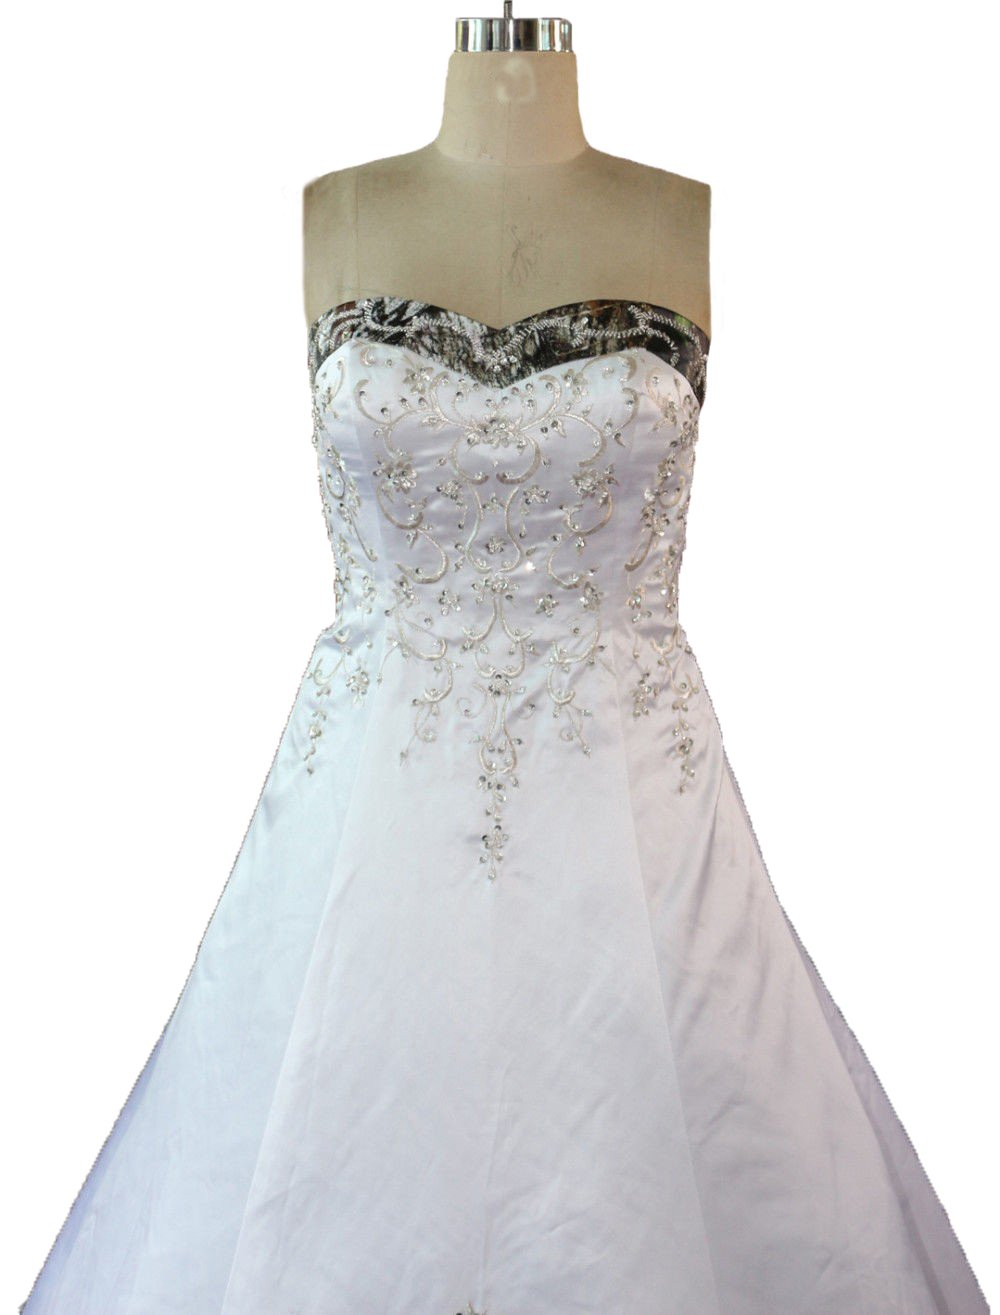 Zvocy White Satin Camo Wedding Dresses A Line Camouflage Embroidery Bridal Gown